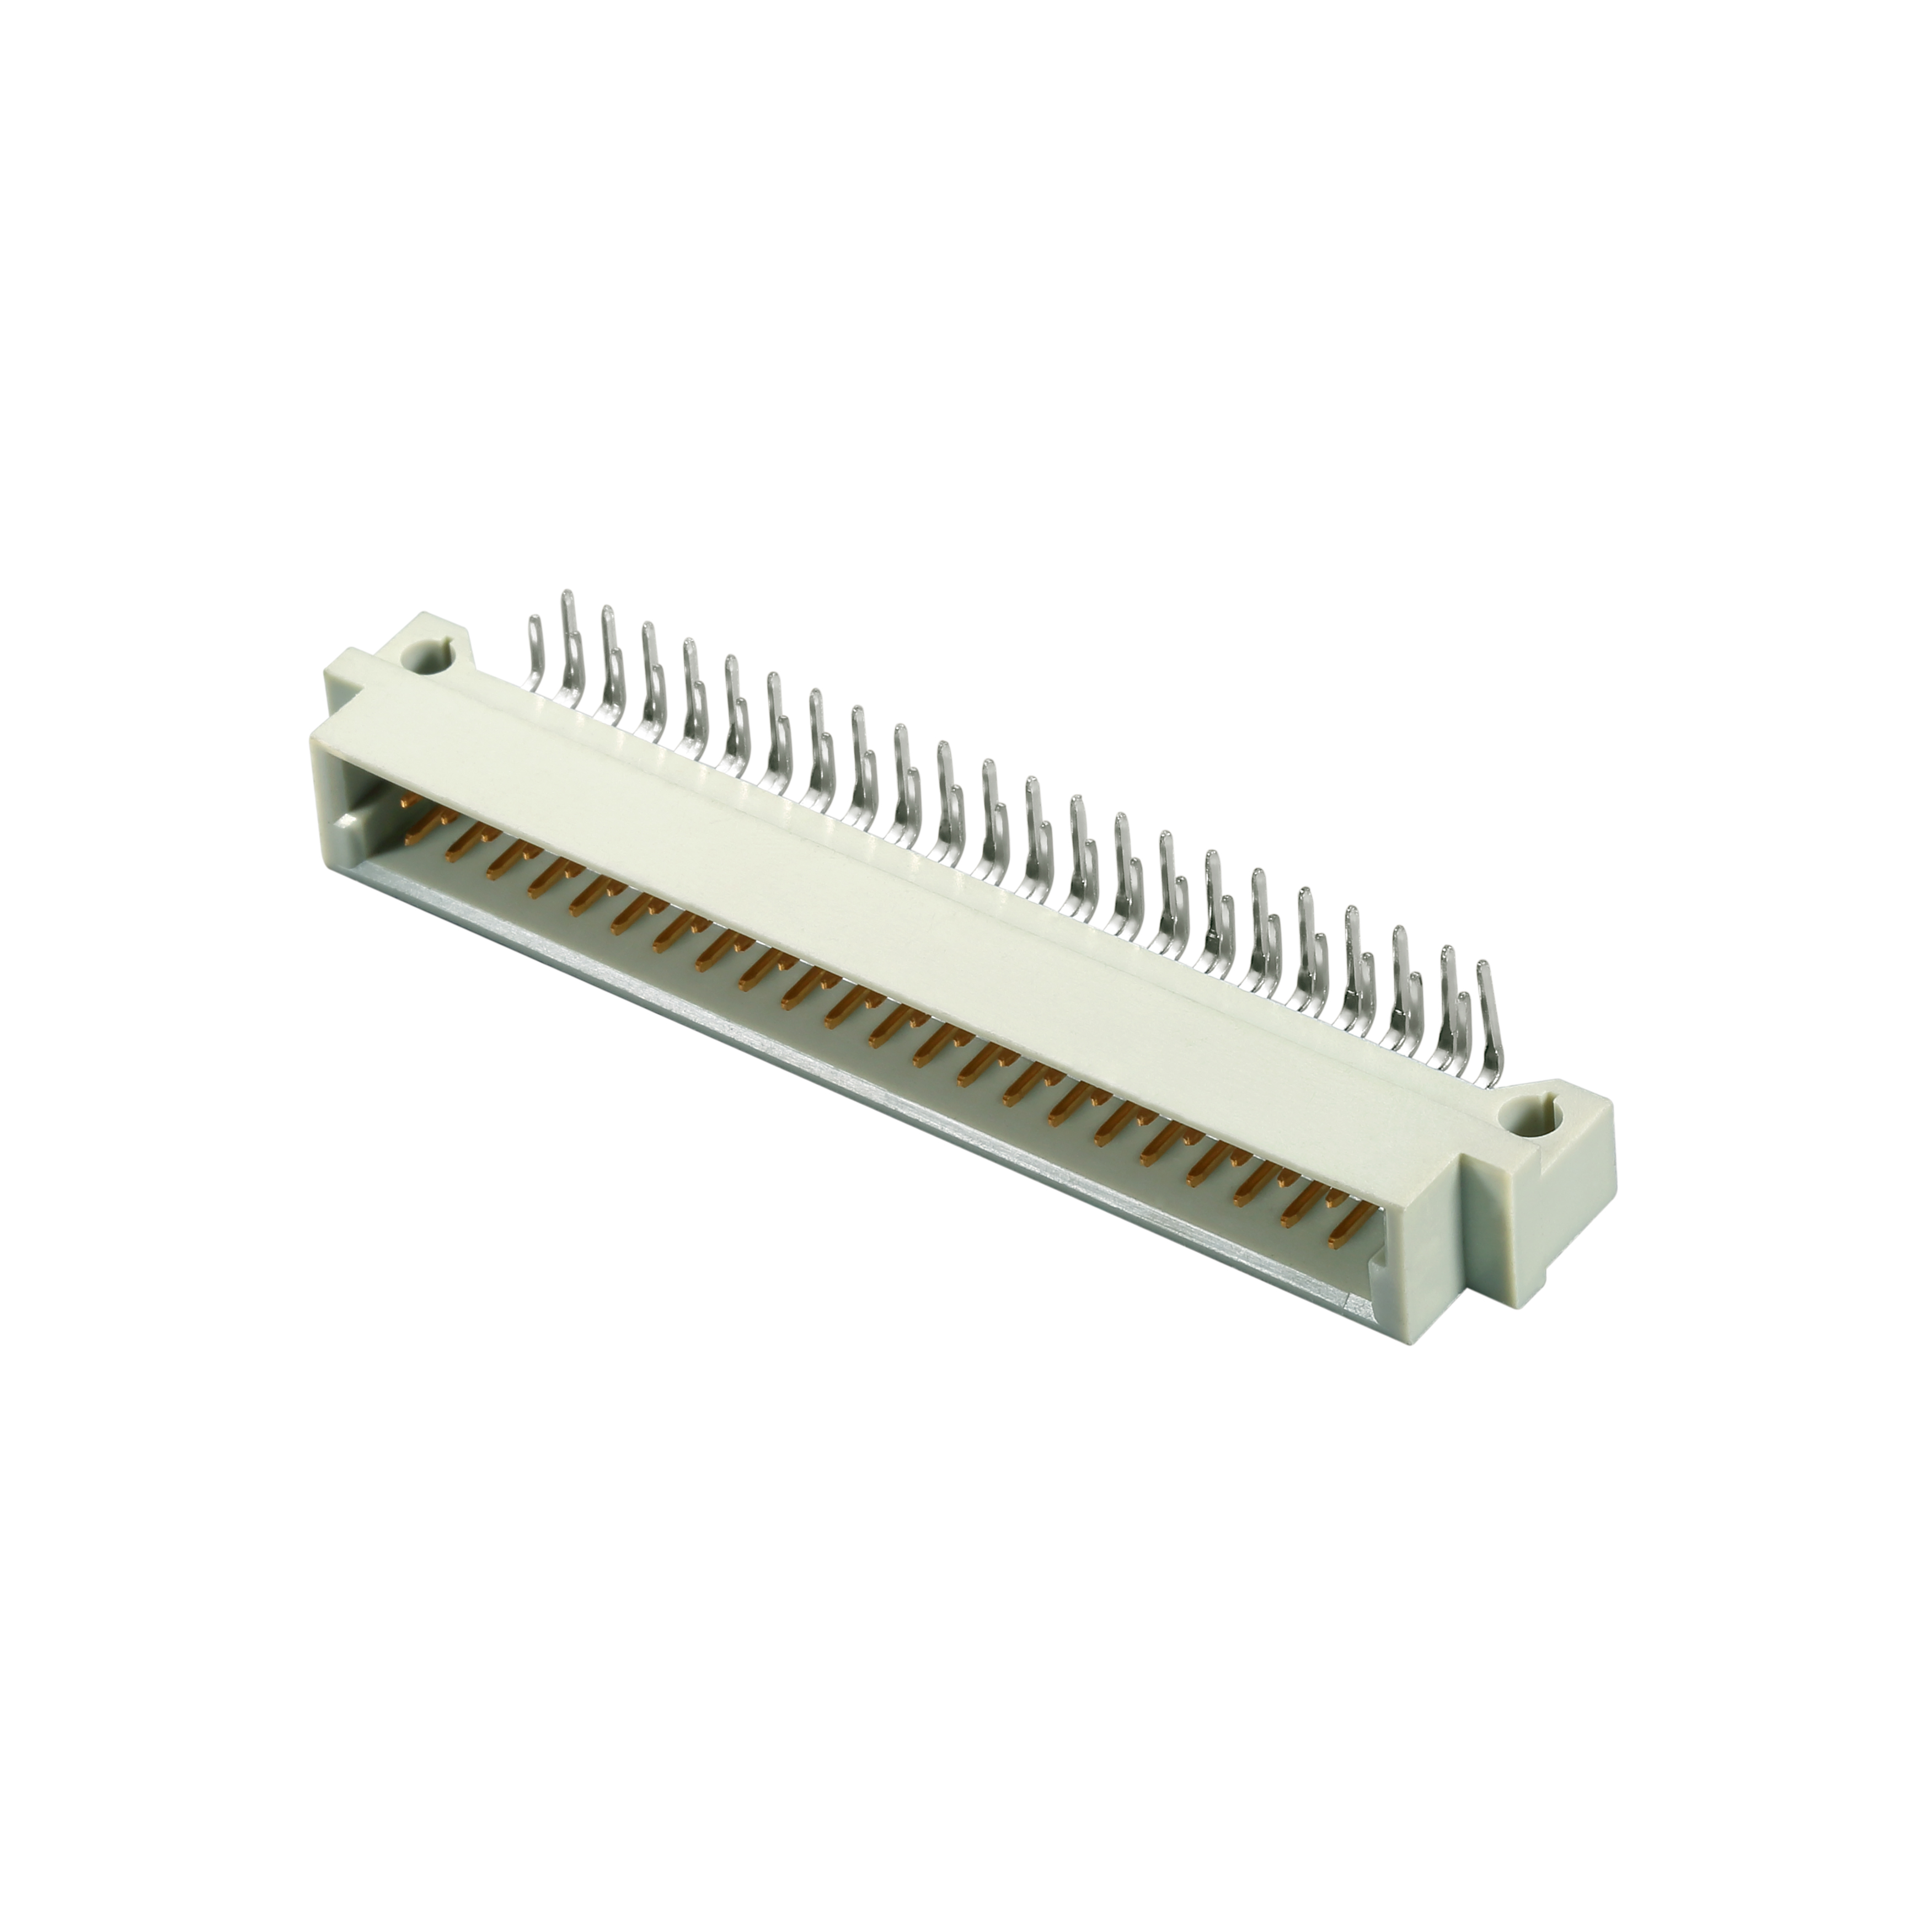 PH2.54mm DIN 41612 Male Dual-row-right-angle-type